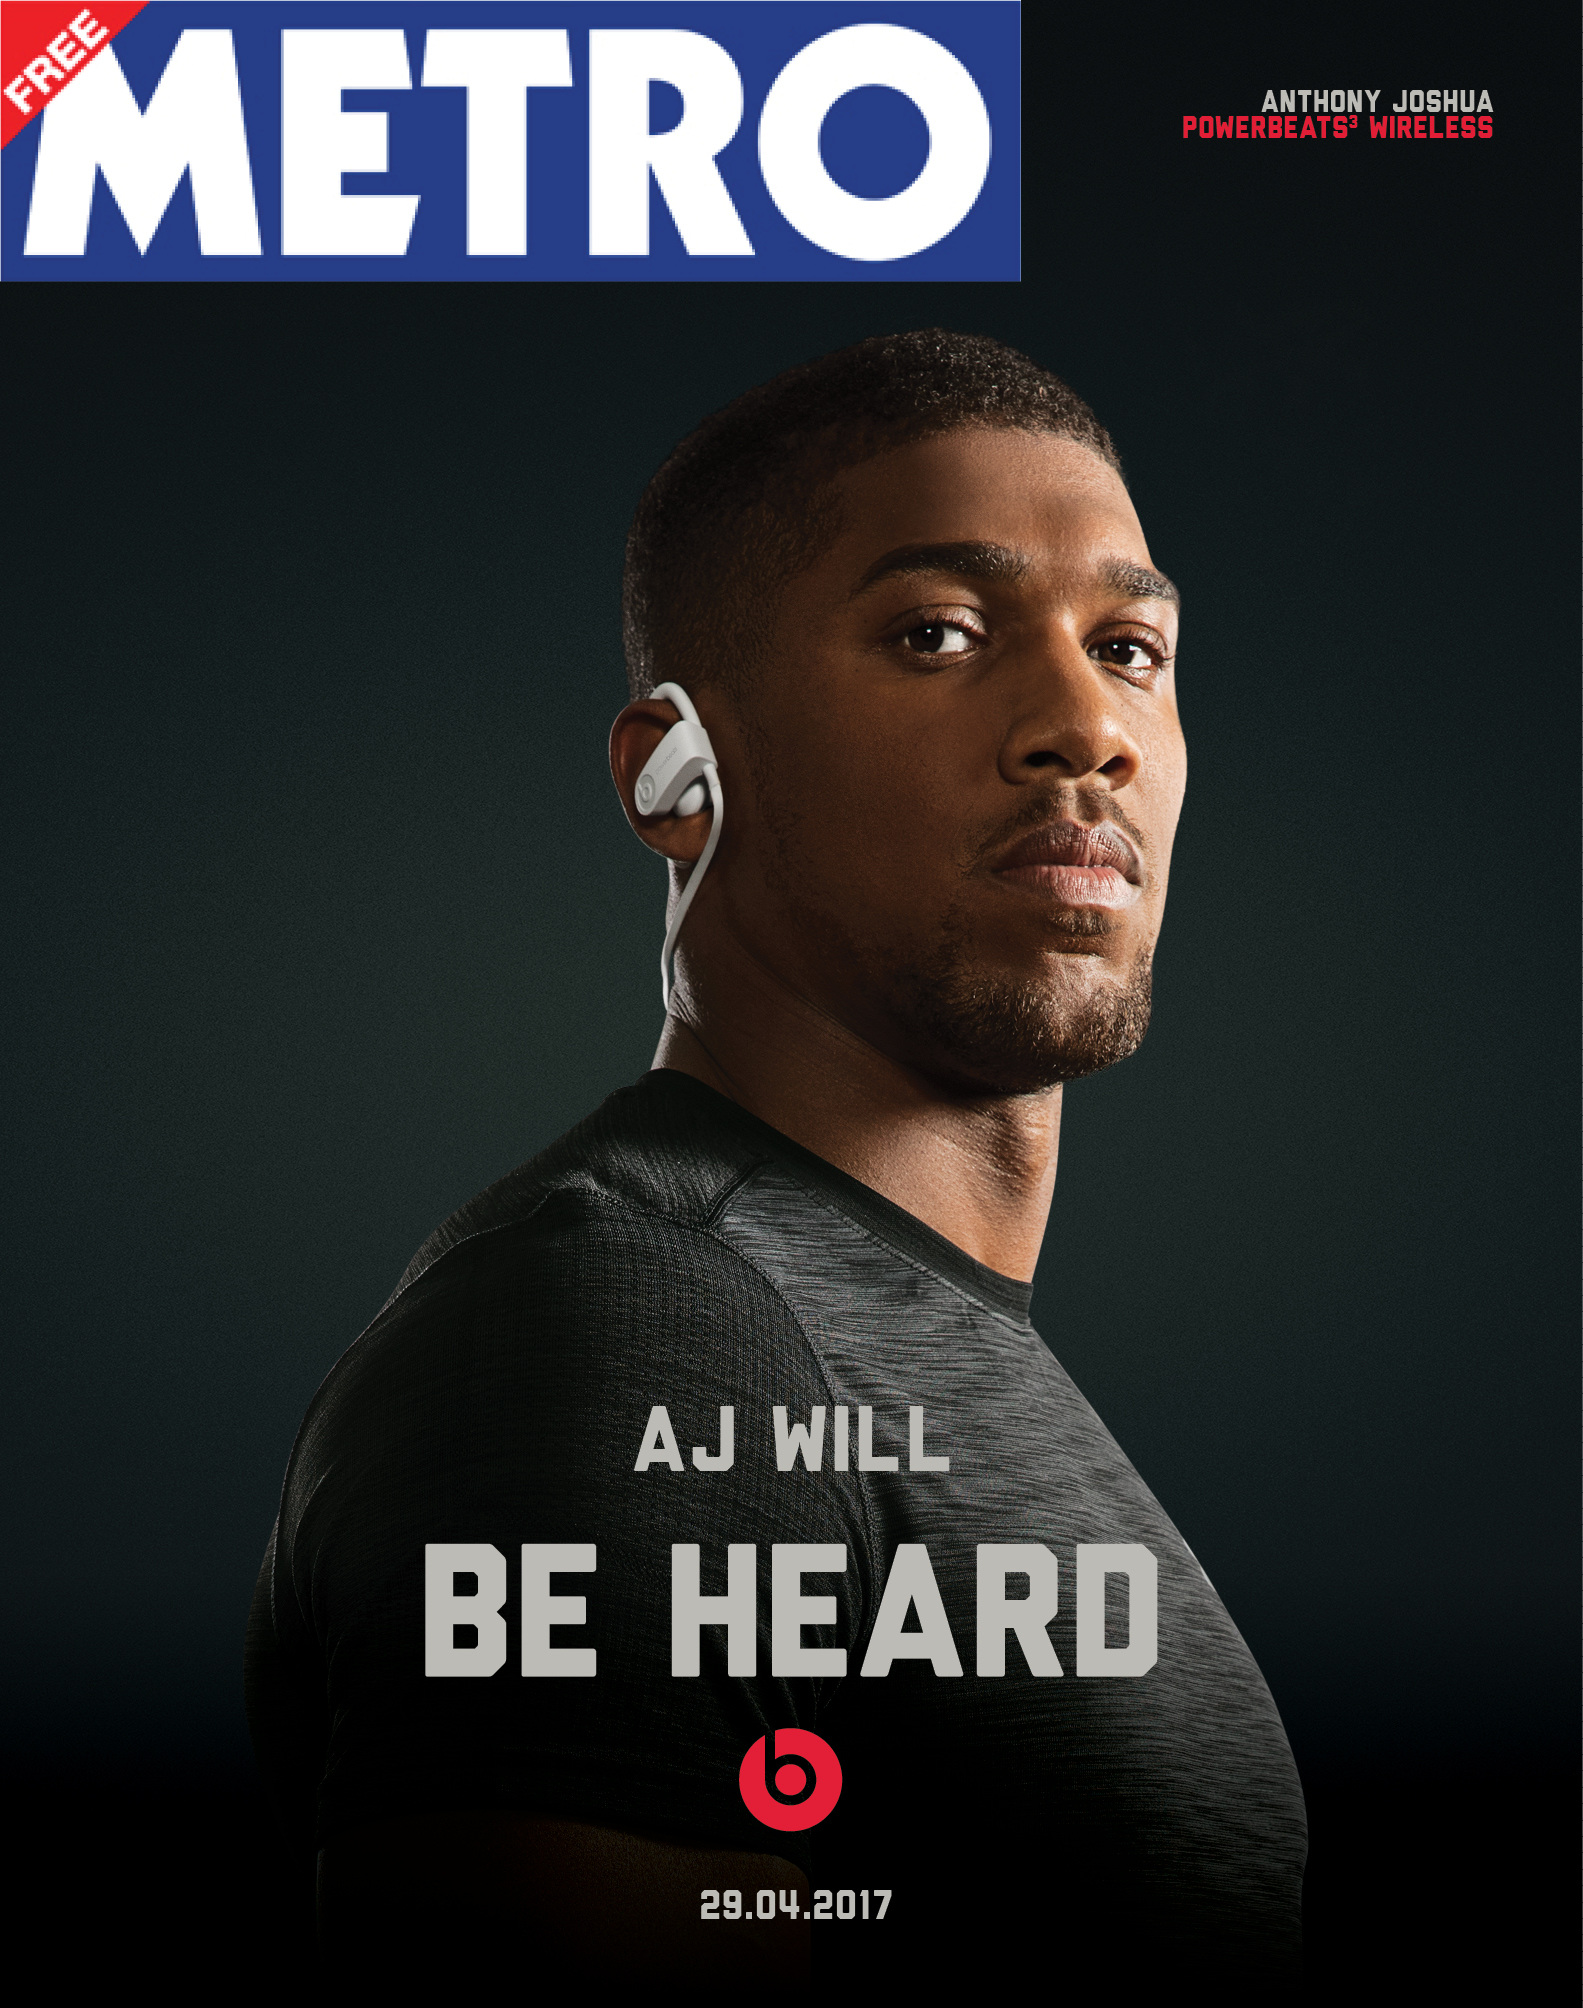 BEATS_AJ_BEHEARD_Metro_Full_Page-copy_1583